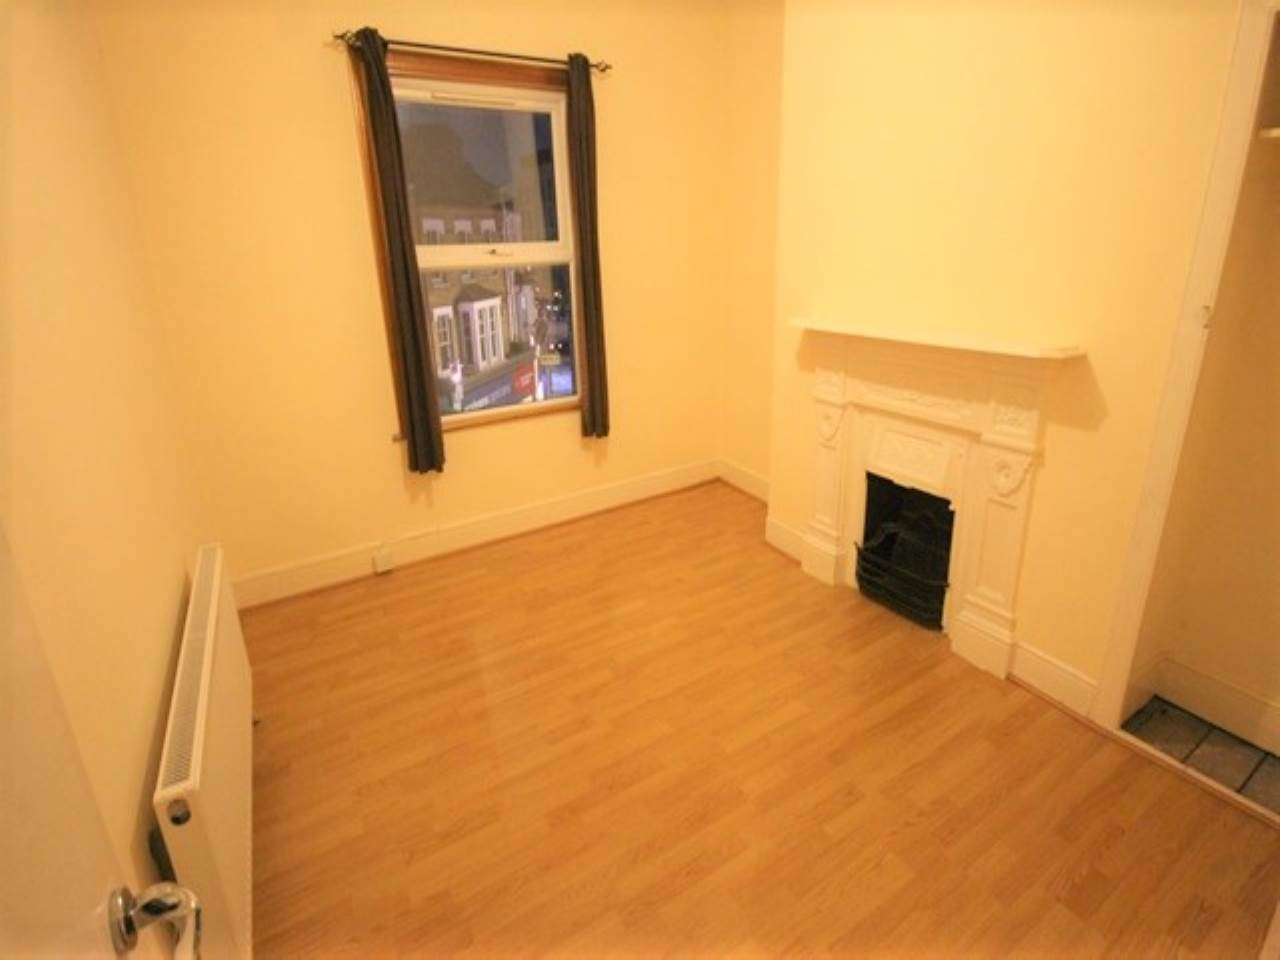 2 bed flat to rent in Hoe Street, Walthamstow - Property Image 1